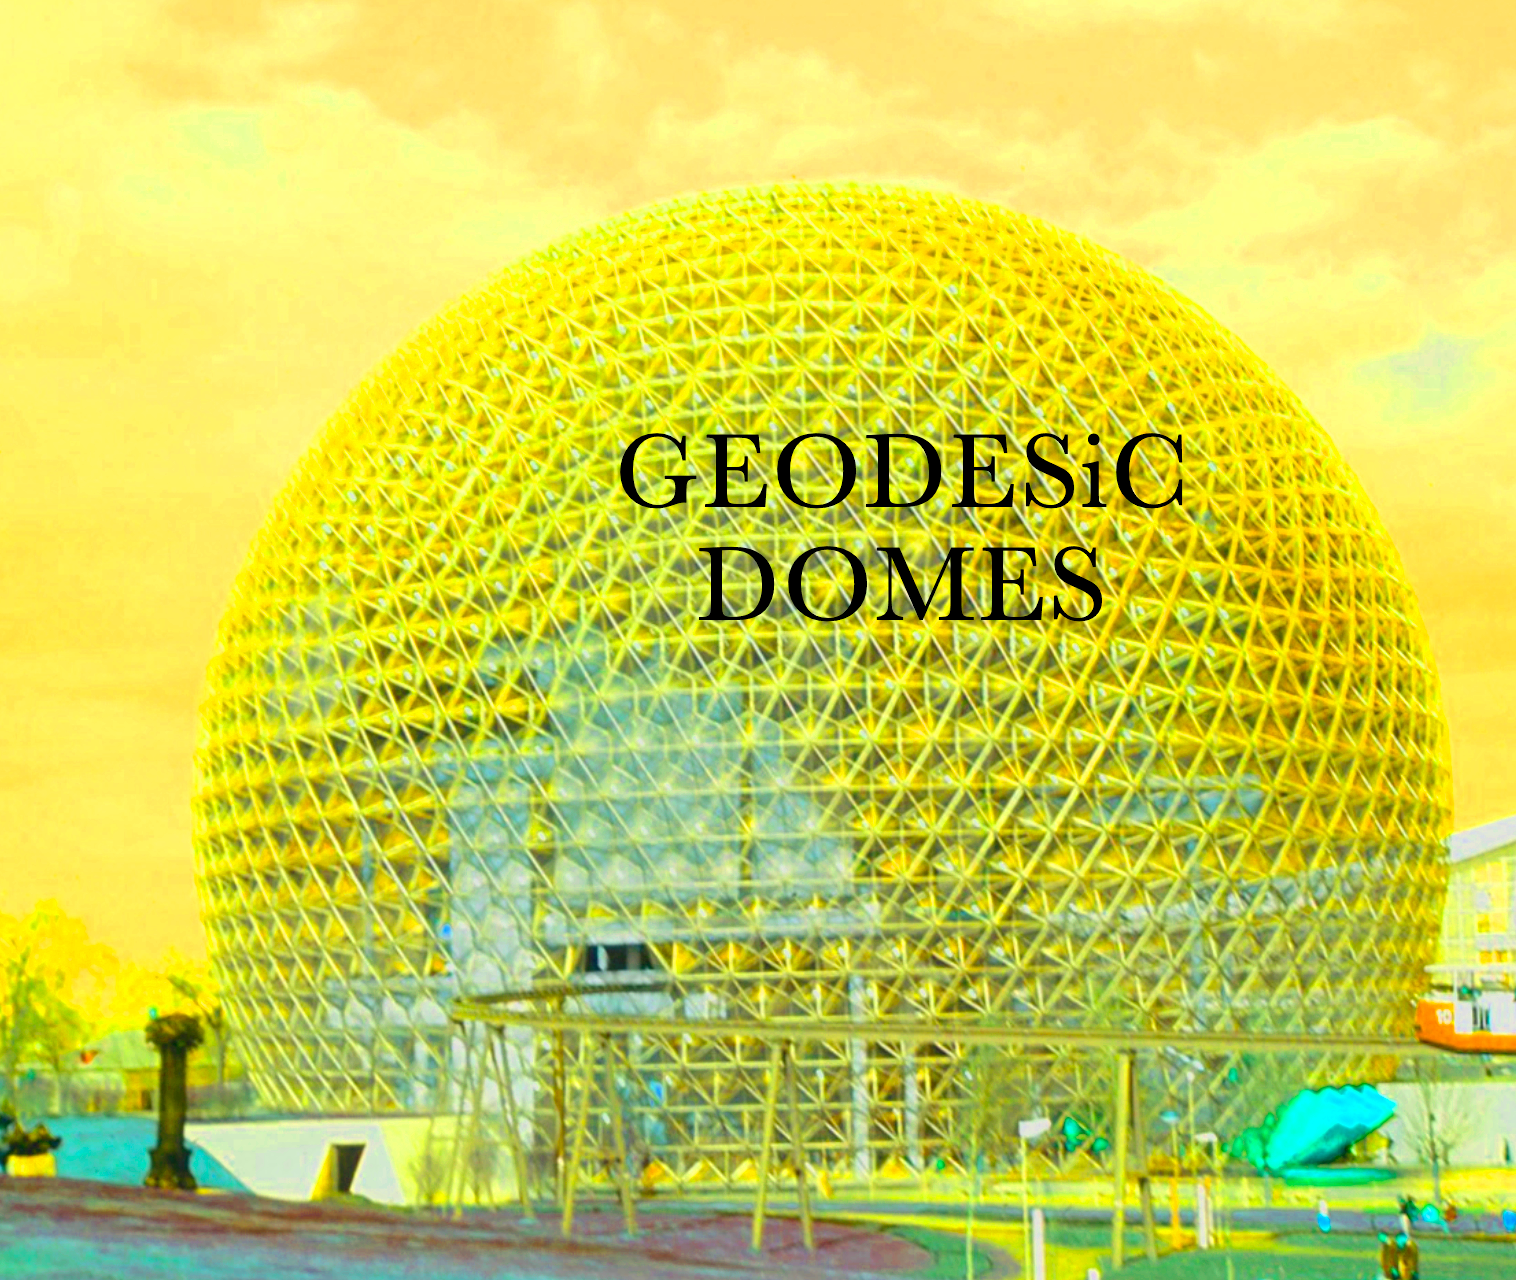 Geodesic Domes and make your own vertices